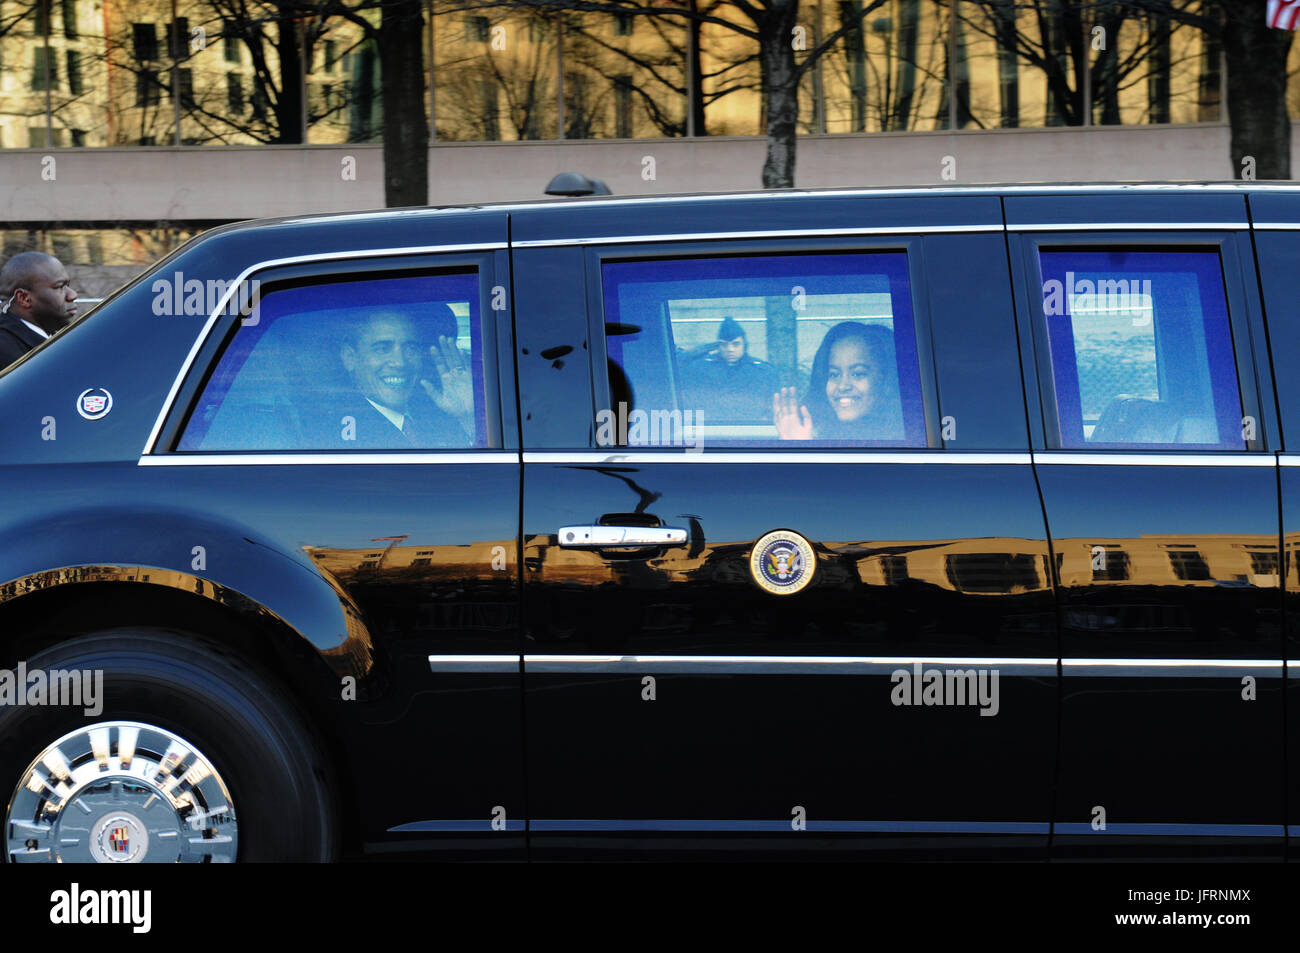 President Barack Obama and his daughter, Sasha, wave to the crowd from inside the presidential limousine as it makes - Stock Image